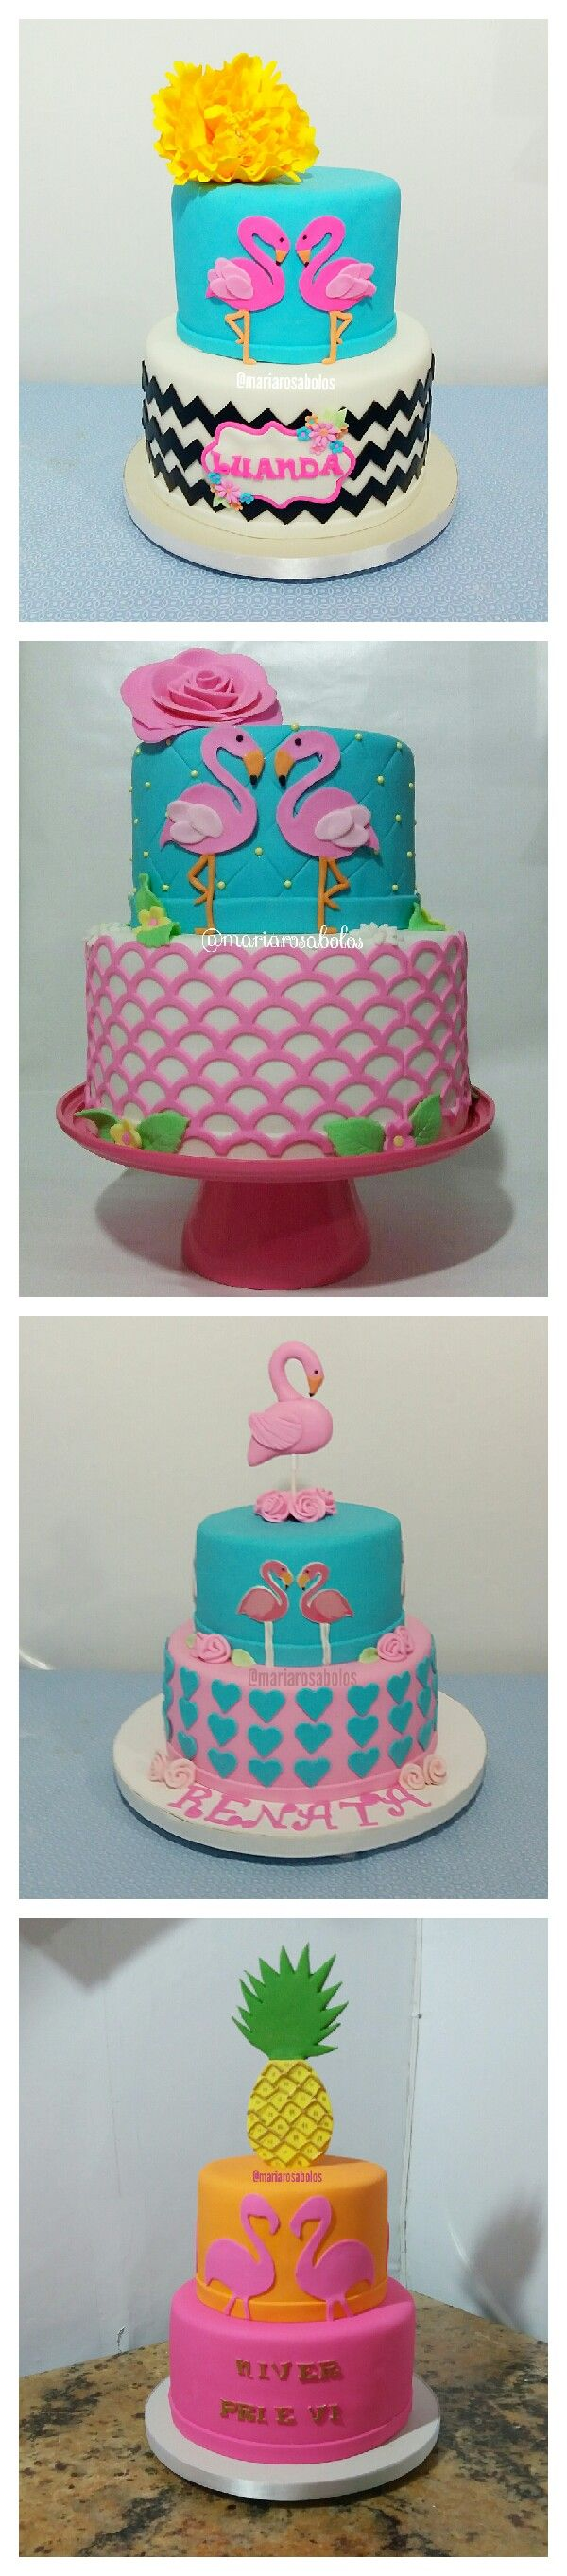 Flamingos cake Bolo de Flamingos #flamingocake